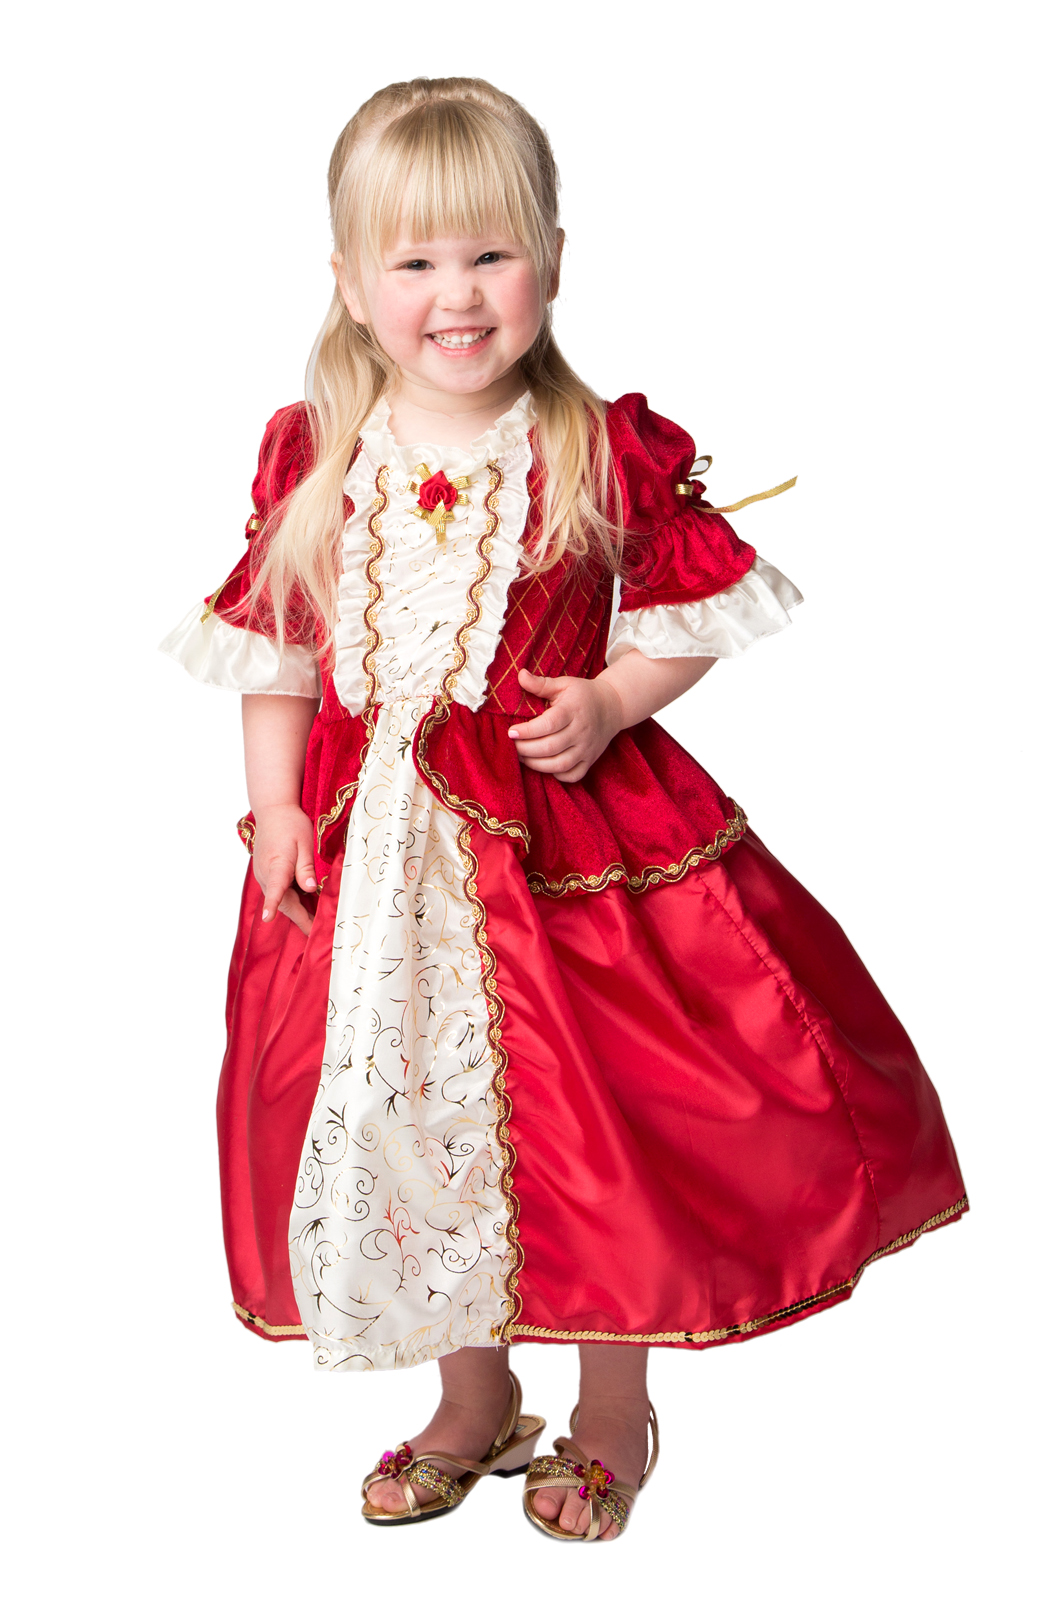 Toddler Red Winter Beauty Dress Up Costume. Zoom  sc 1 st  Little Dress Up Shop & Toddler Winter Belle Dress Up Costume | Toddler Red Winter Belle Dress